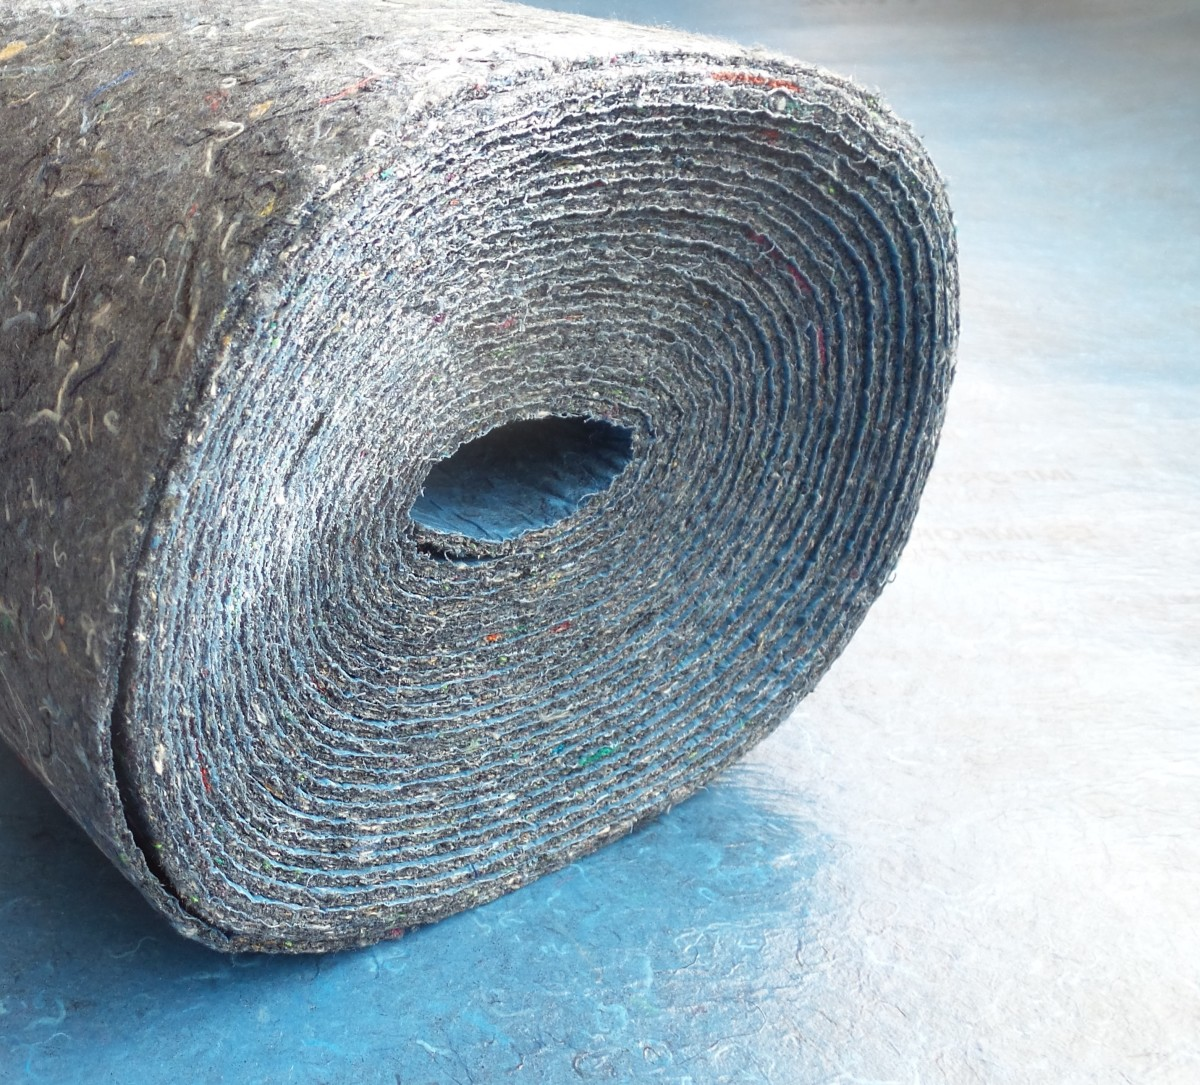 Underlayment padding can make walking on your floors much more comfortable.